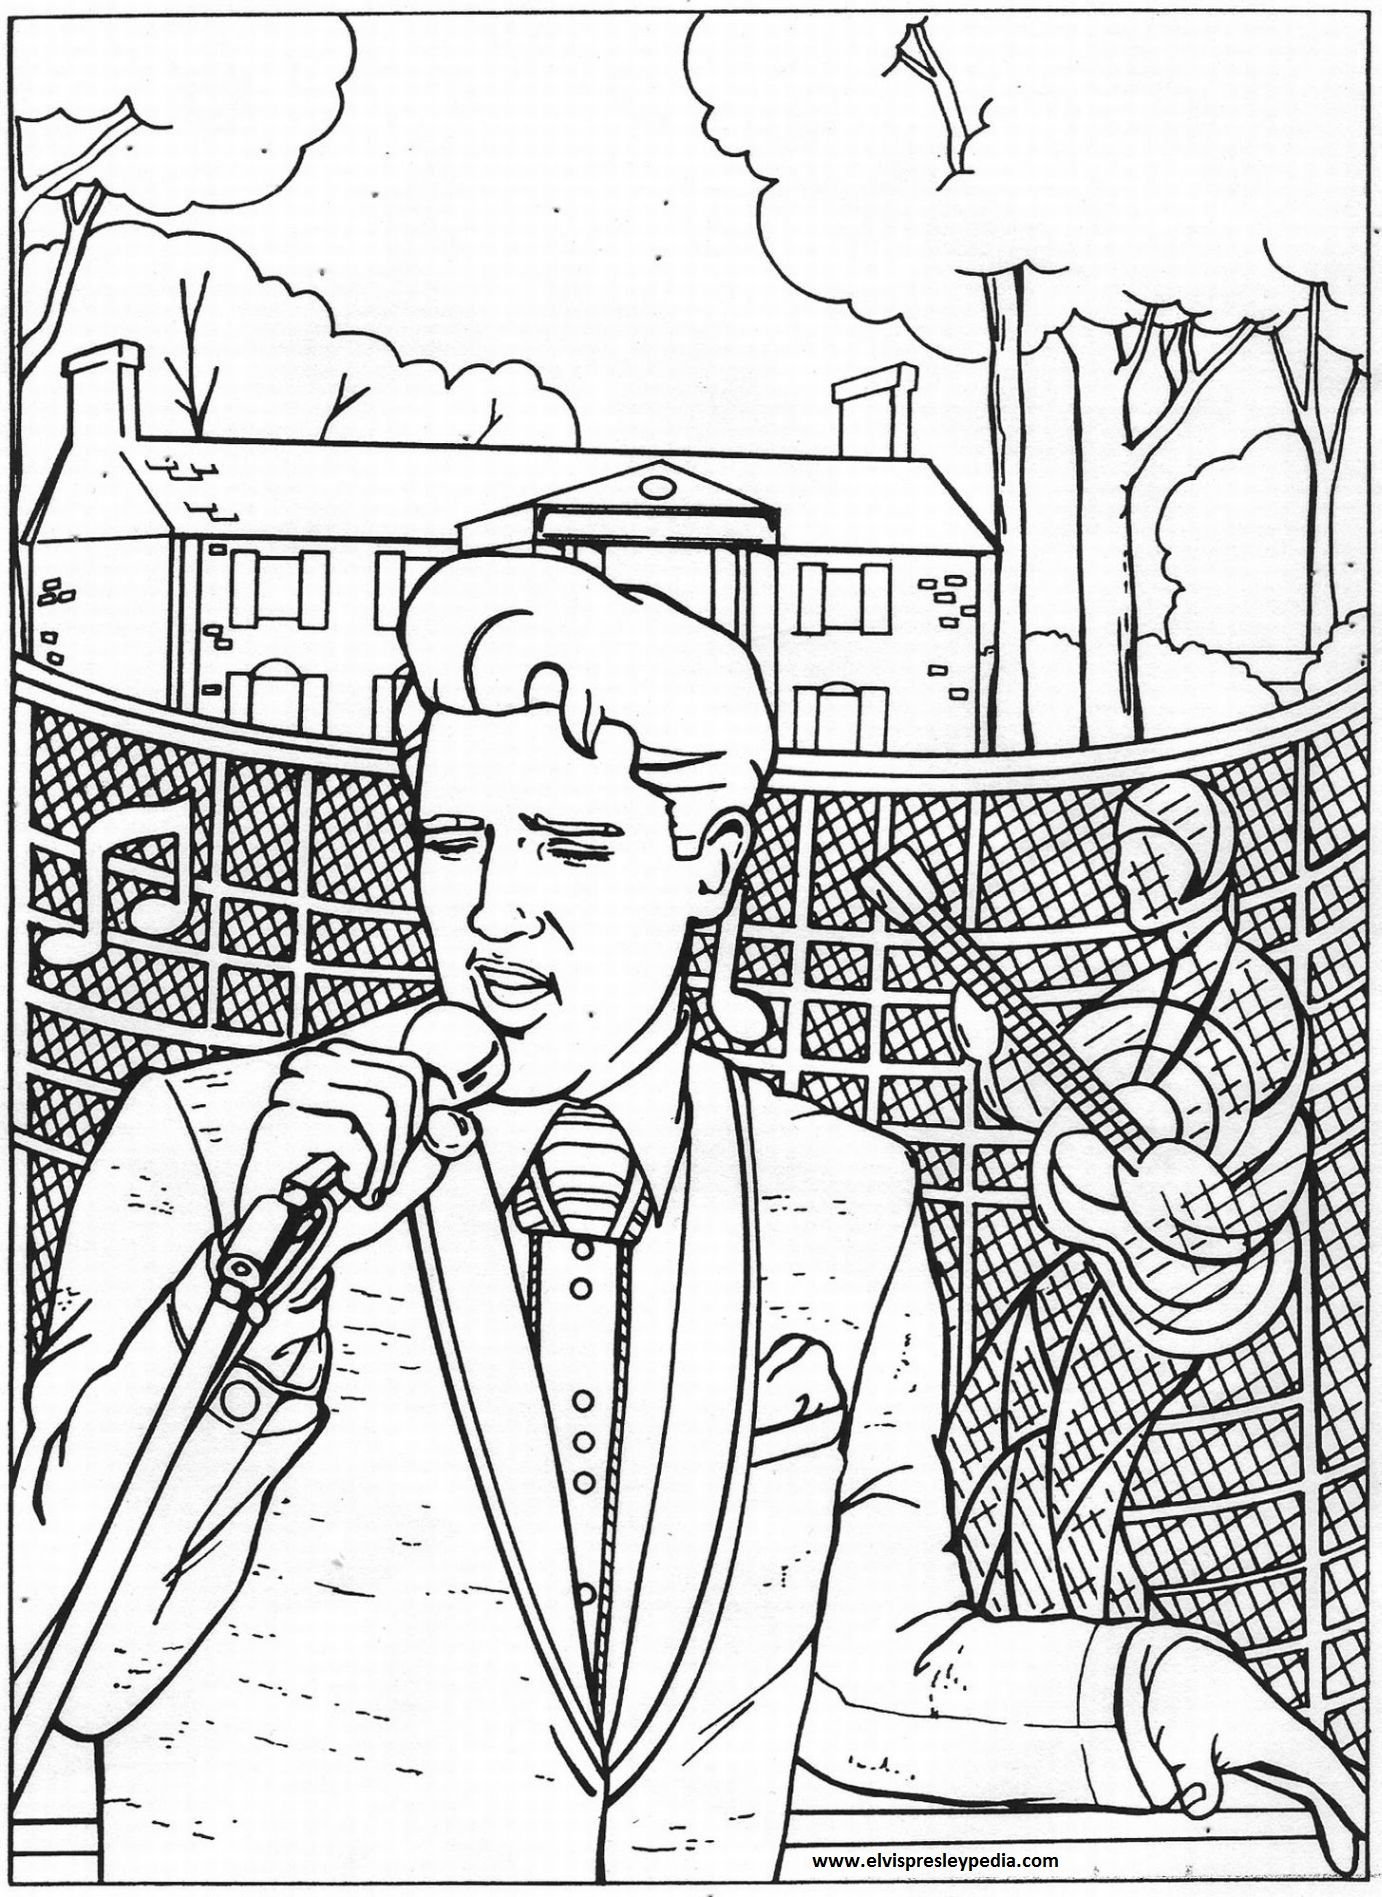 elvis presley coloring pages Don't Cry Daddy | Elvis Presley | Coloring pages, Elvis Presley  elvis presley coloring pages